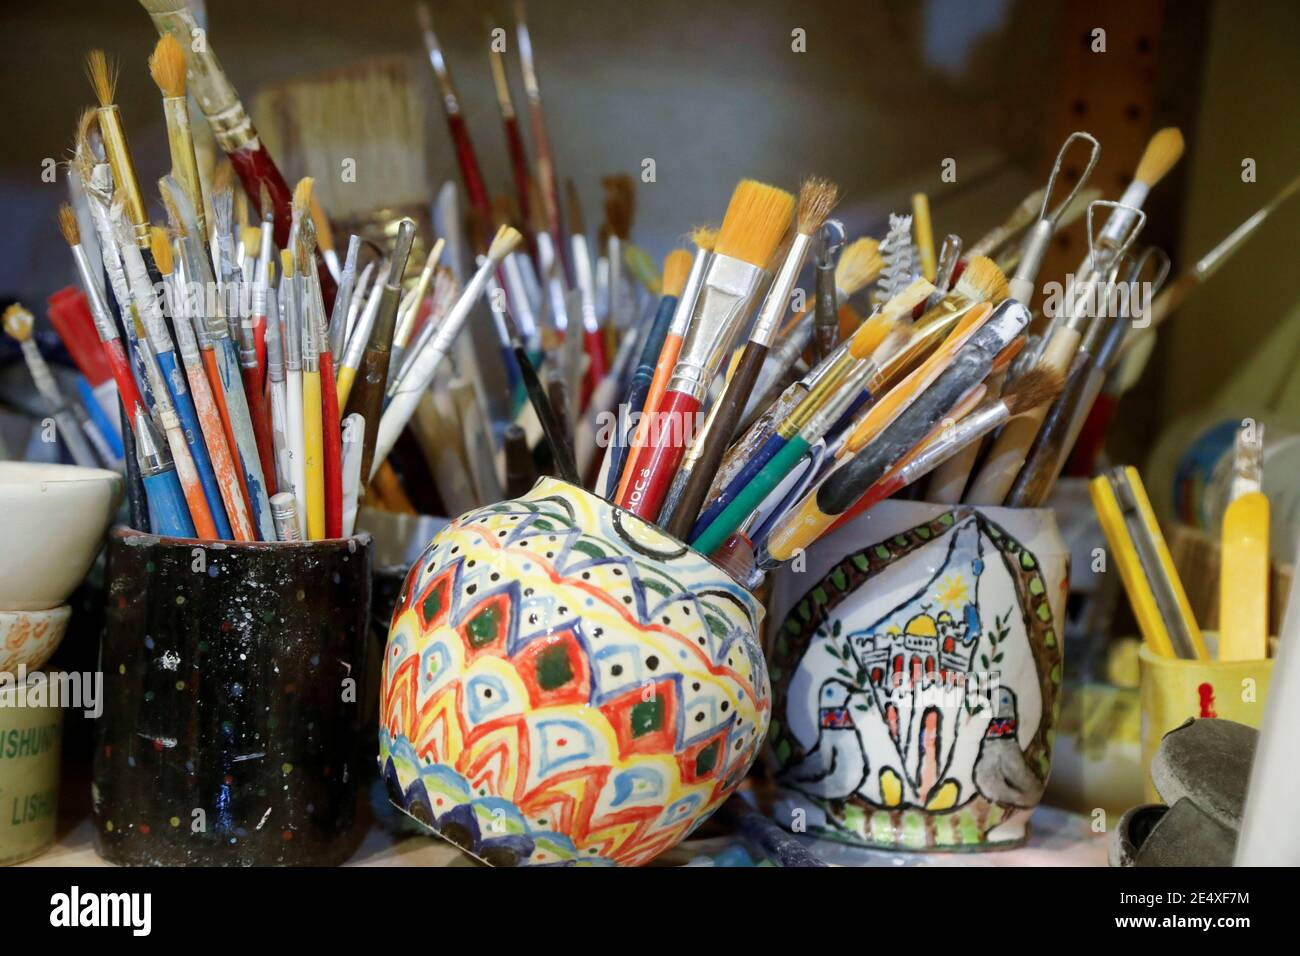 Brushes Used By Palestinians To Paint Ceramic Plates For Sale Are Seen In A Workshop In